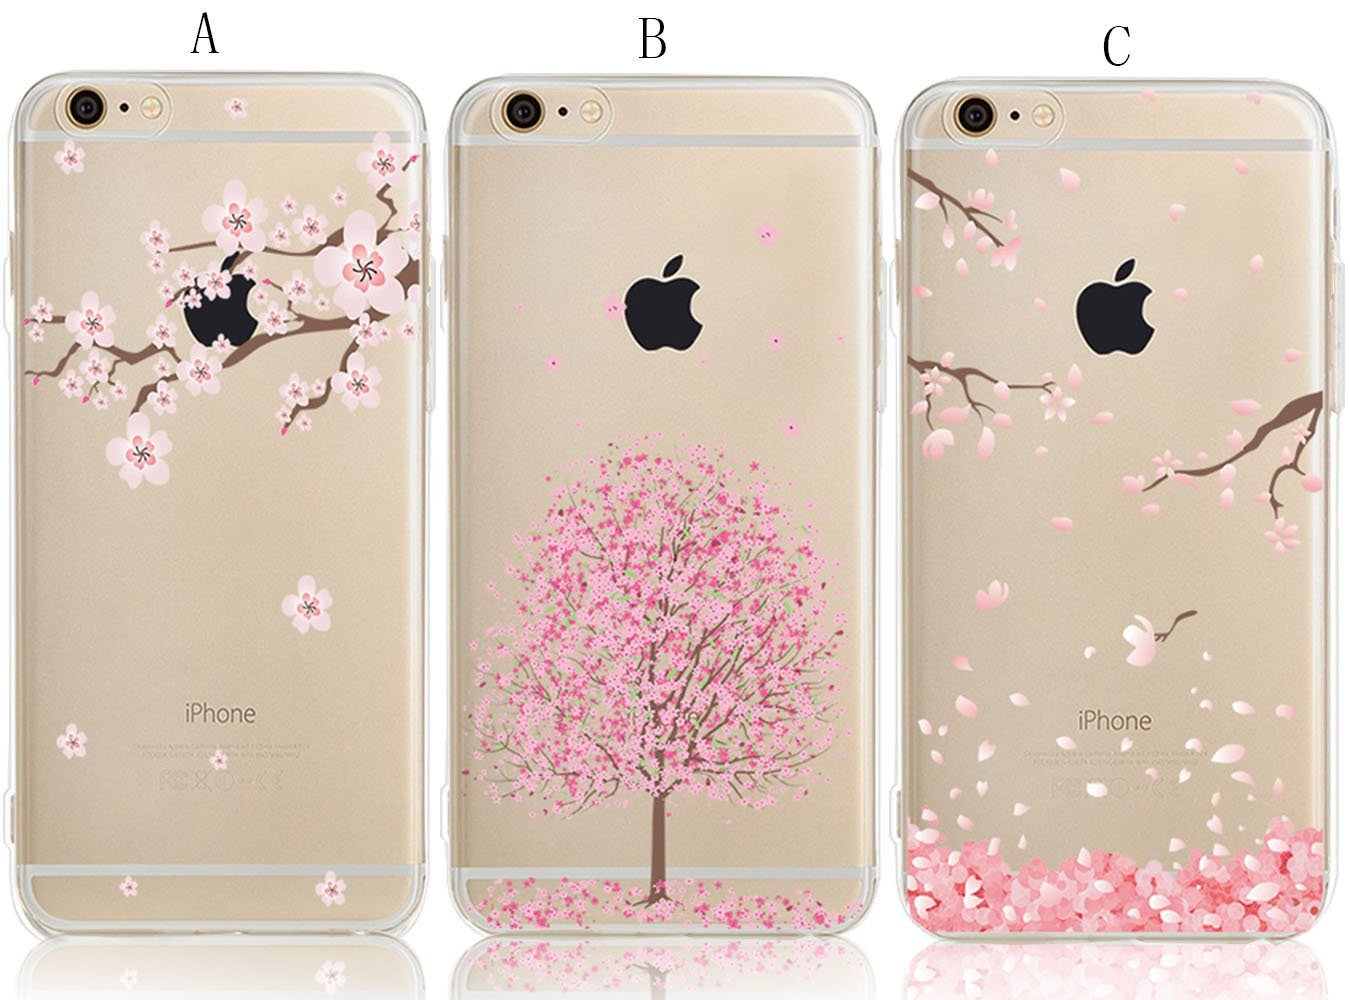 iPhone 6 6S Case with Flowers, [3-Pack] CarterLily Watercolor Flowers Floral Pattern Soft Clear Flexible TPU Back Case for iPhone 6 6S 4.7 - ...